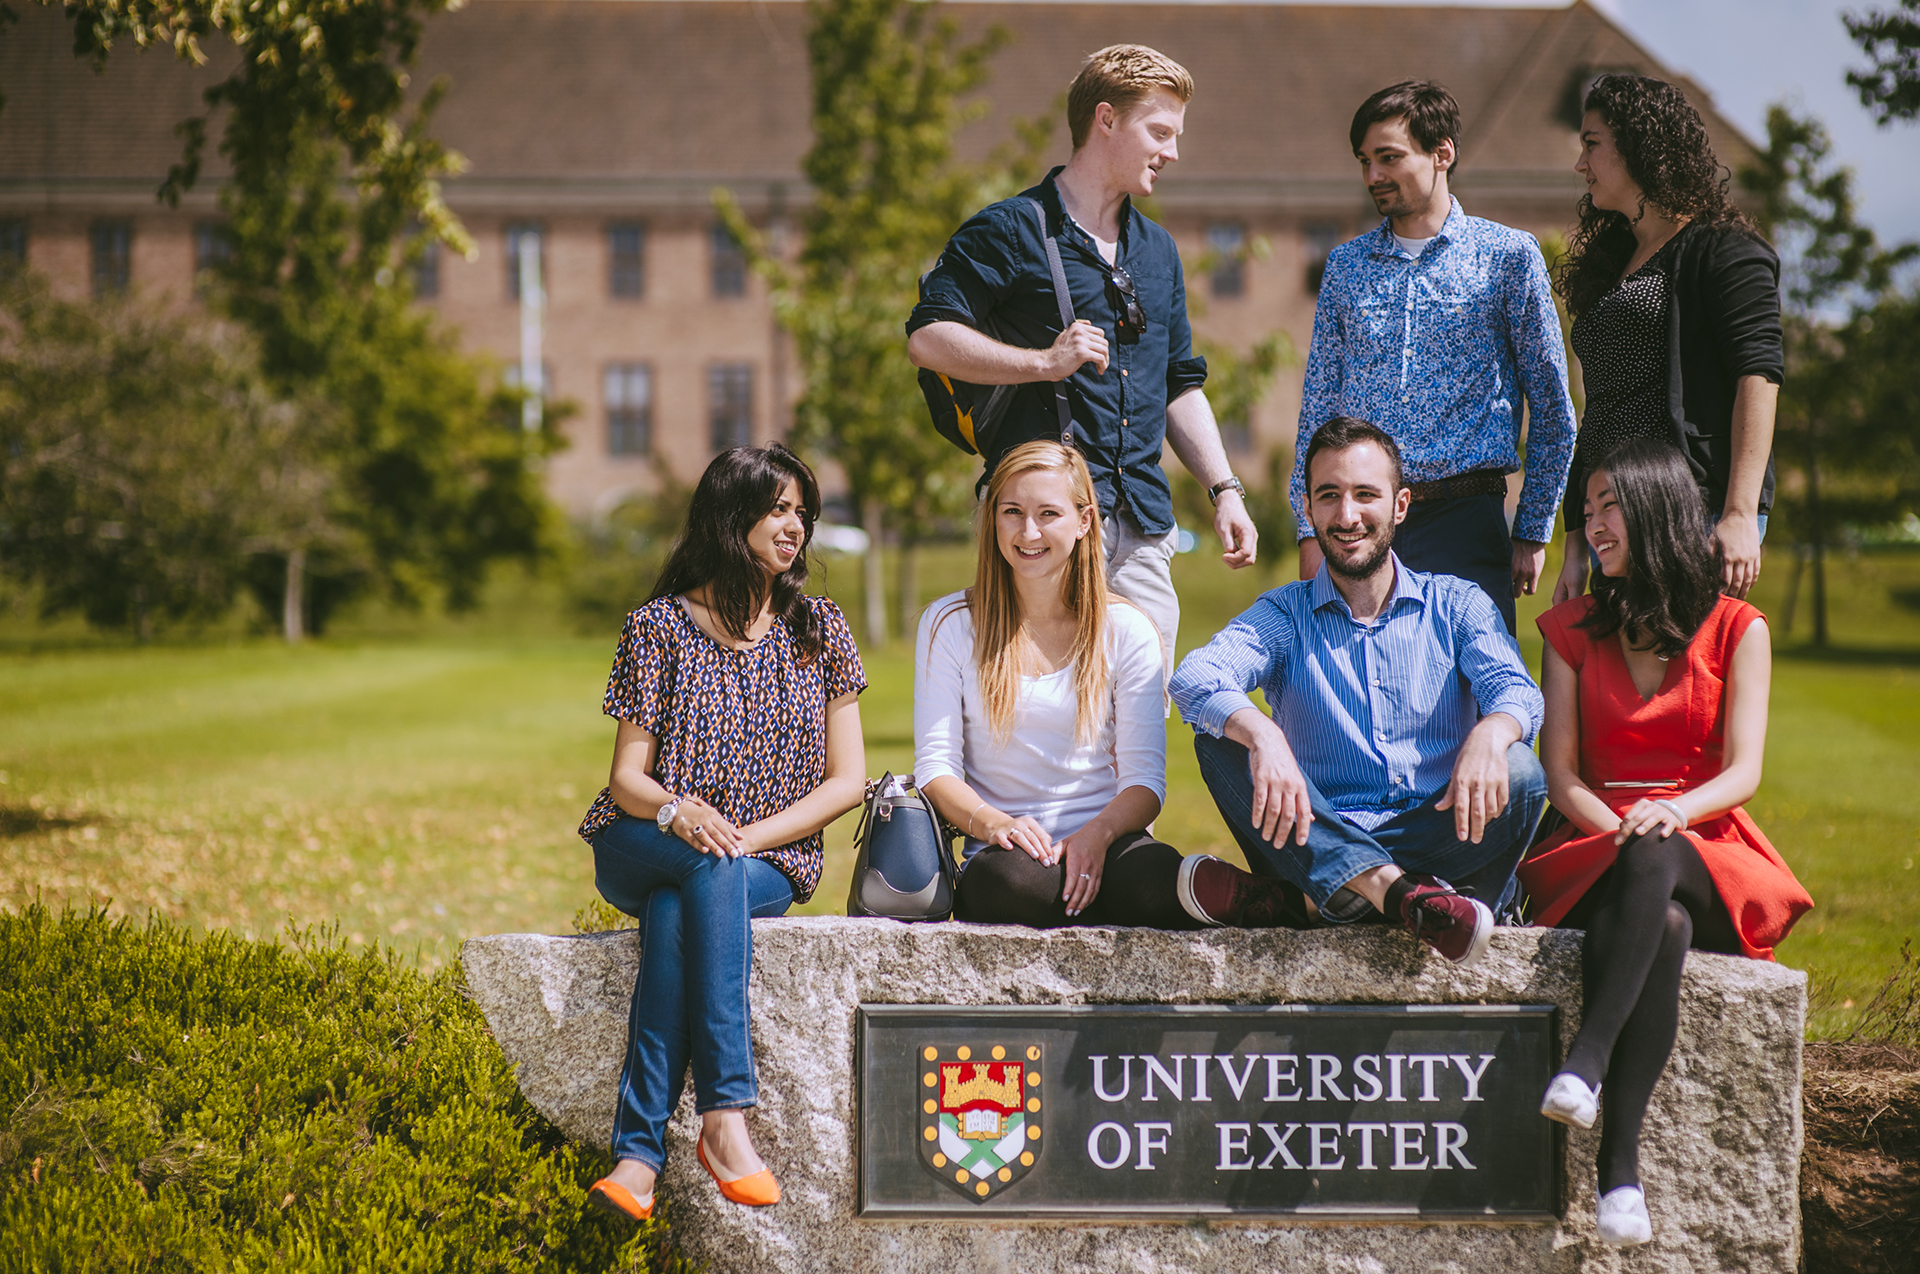 International students standing outside by the University of Exeter sign